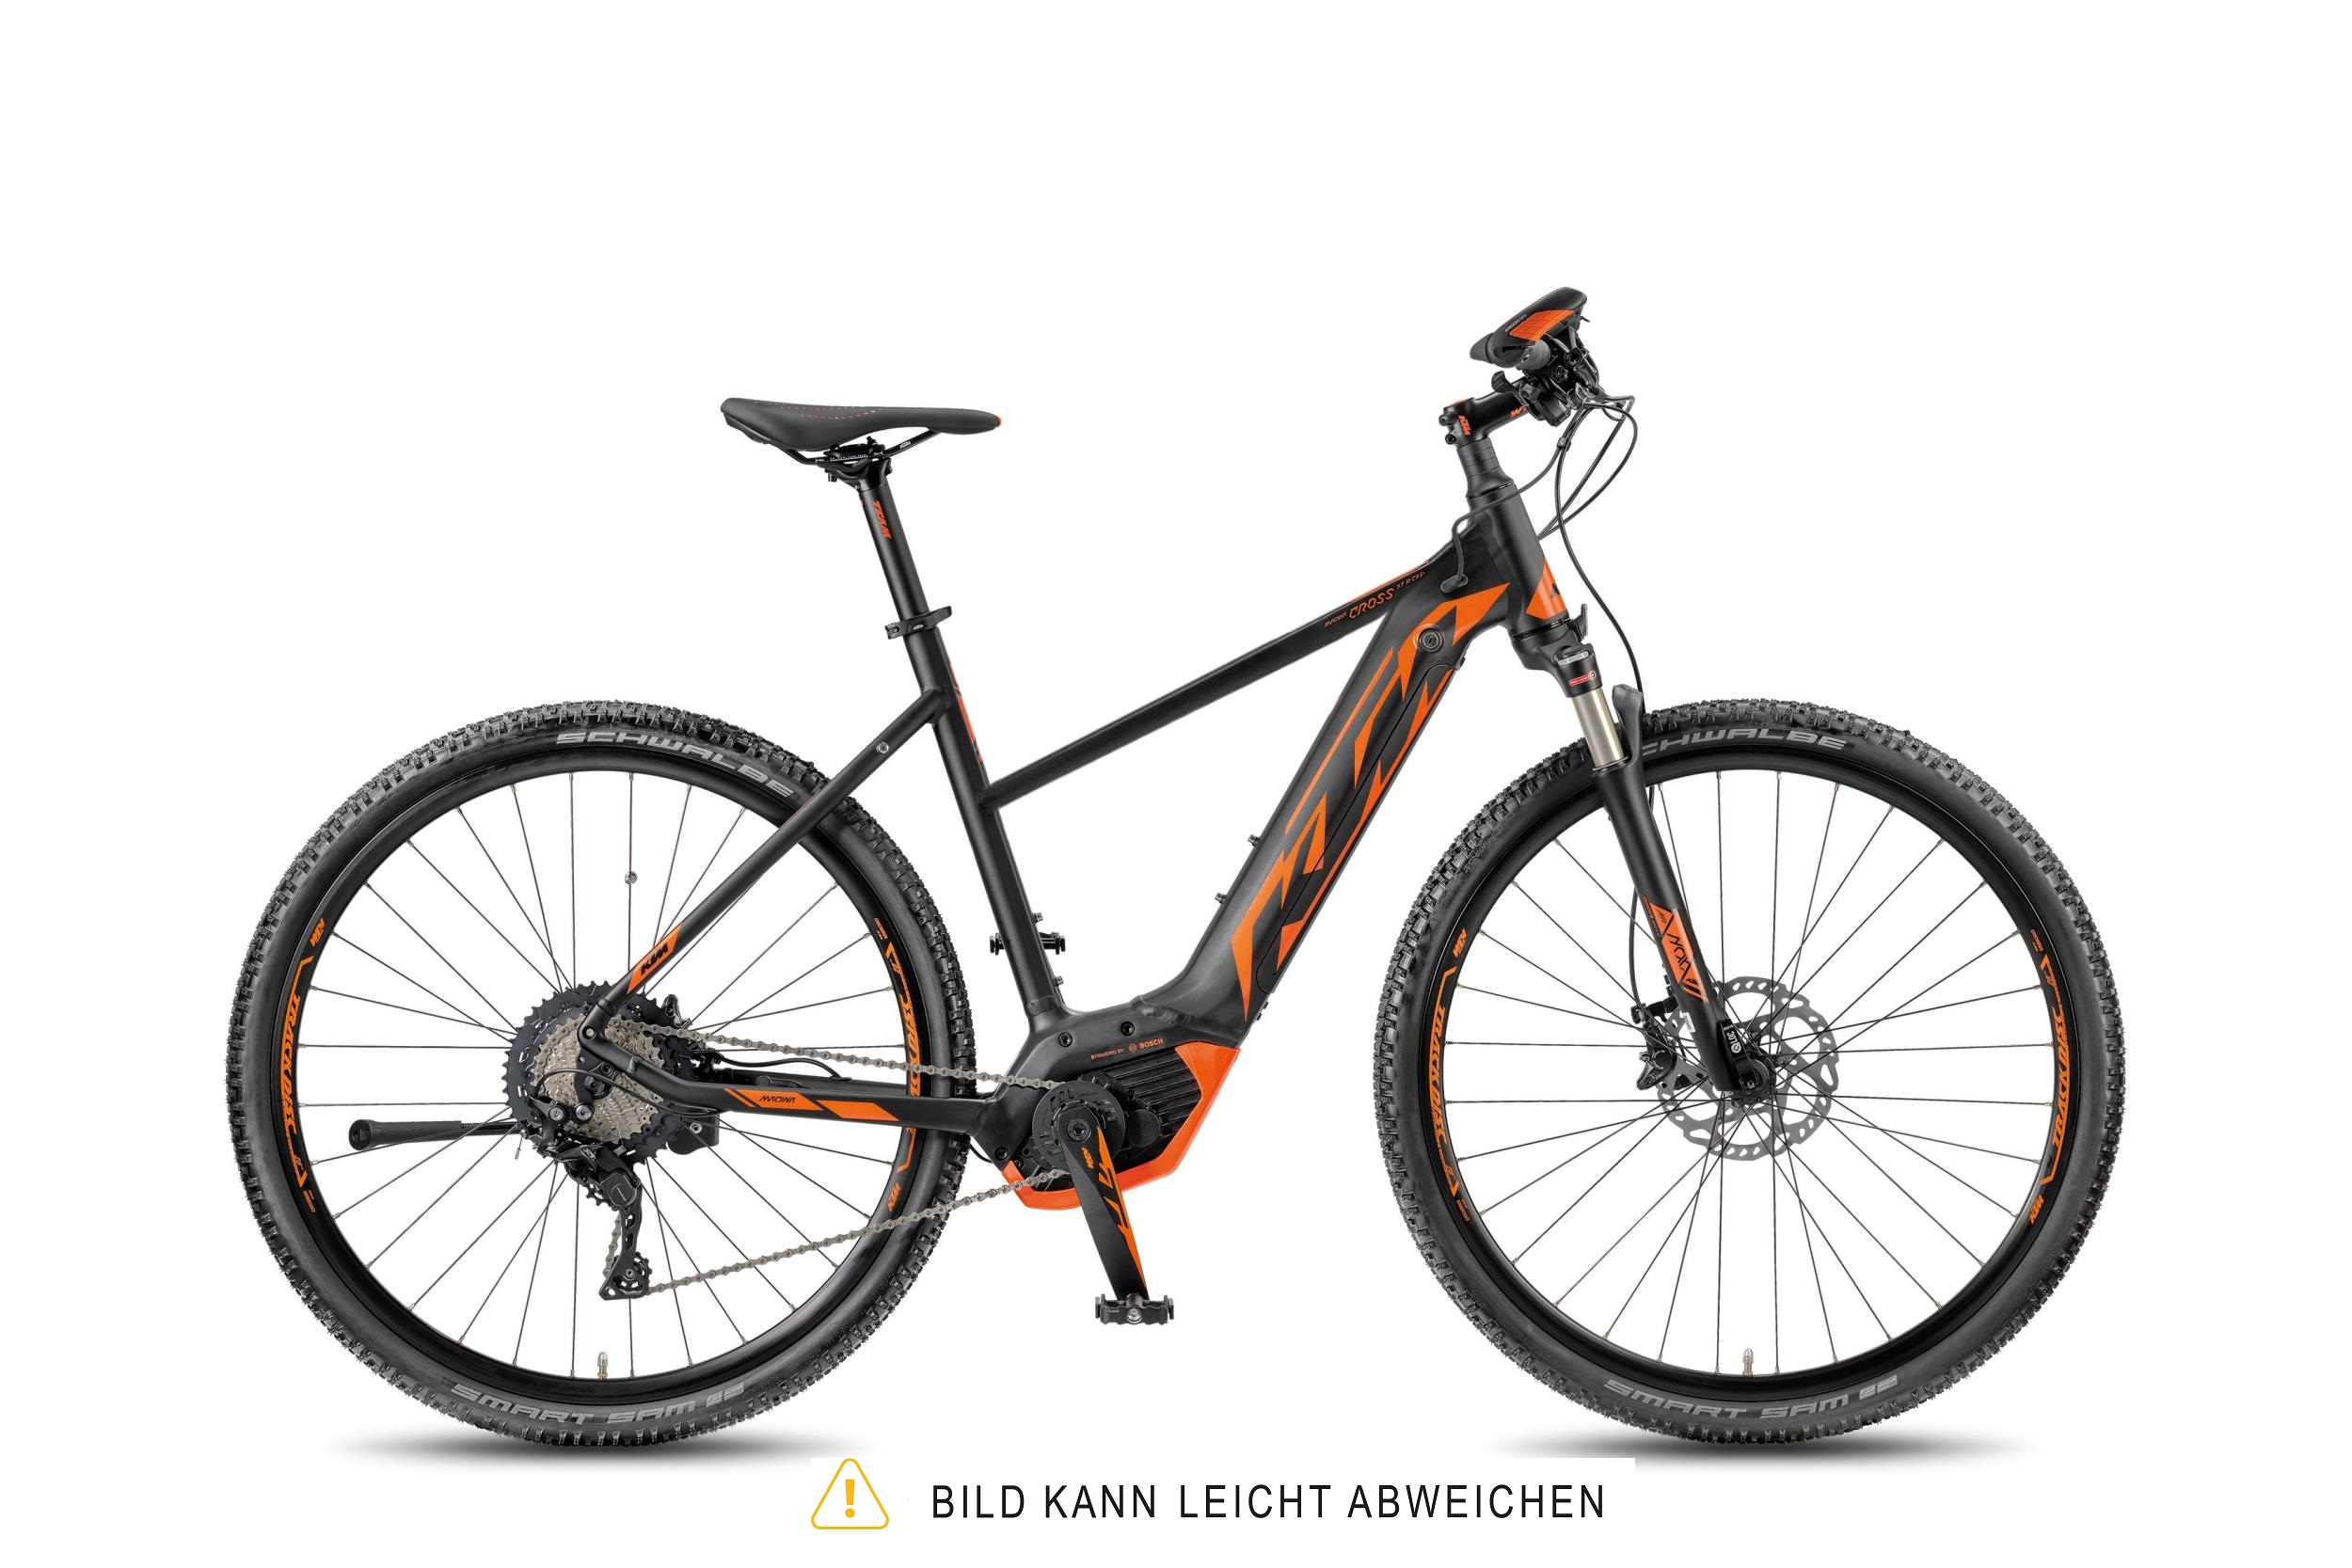 KTM MACINA CROSS XT 11 CX5+ DA black matt (orange) 2018 - DA -  46 cm